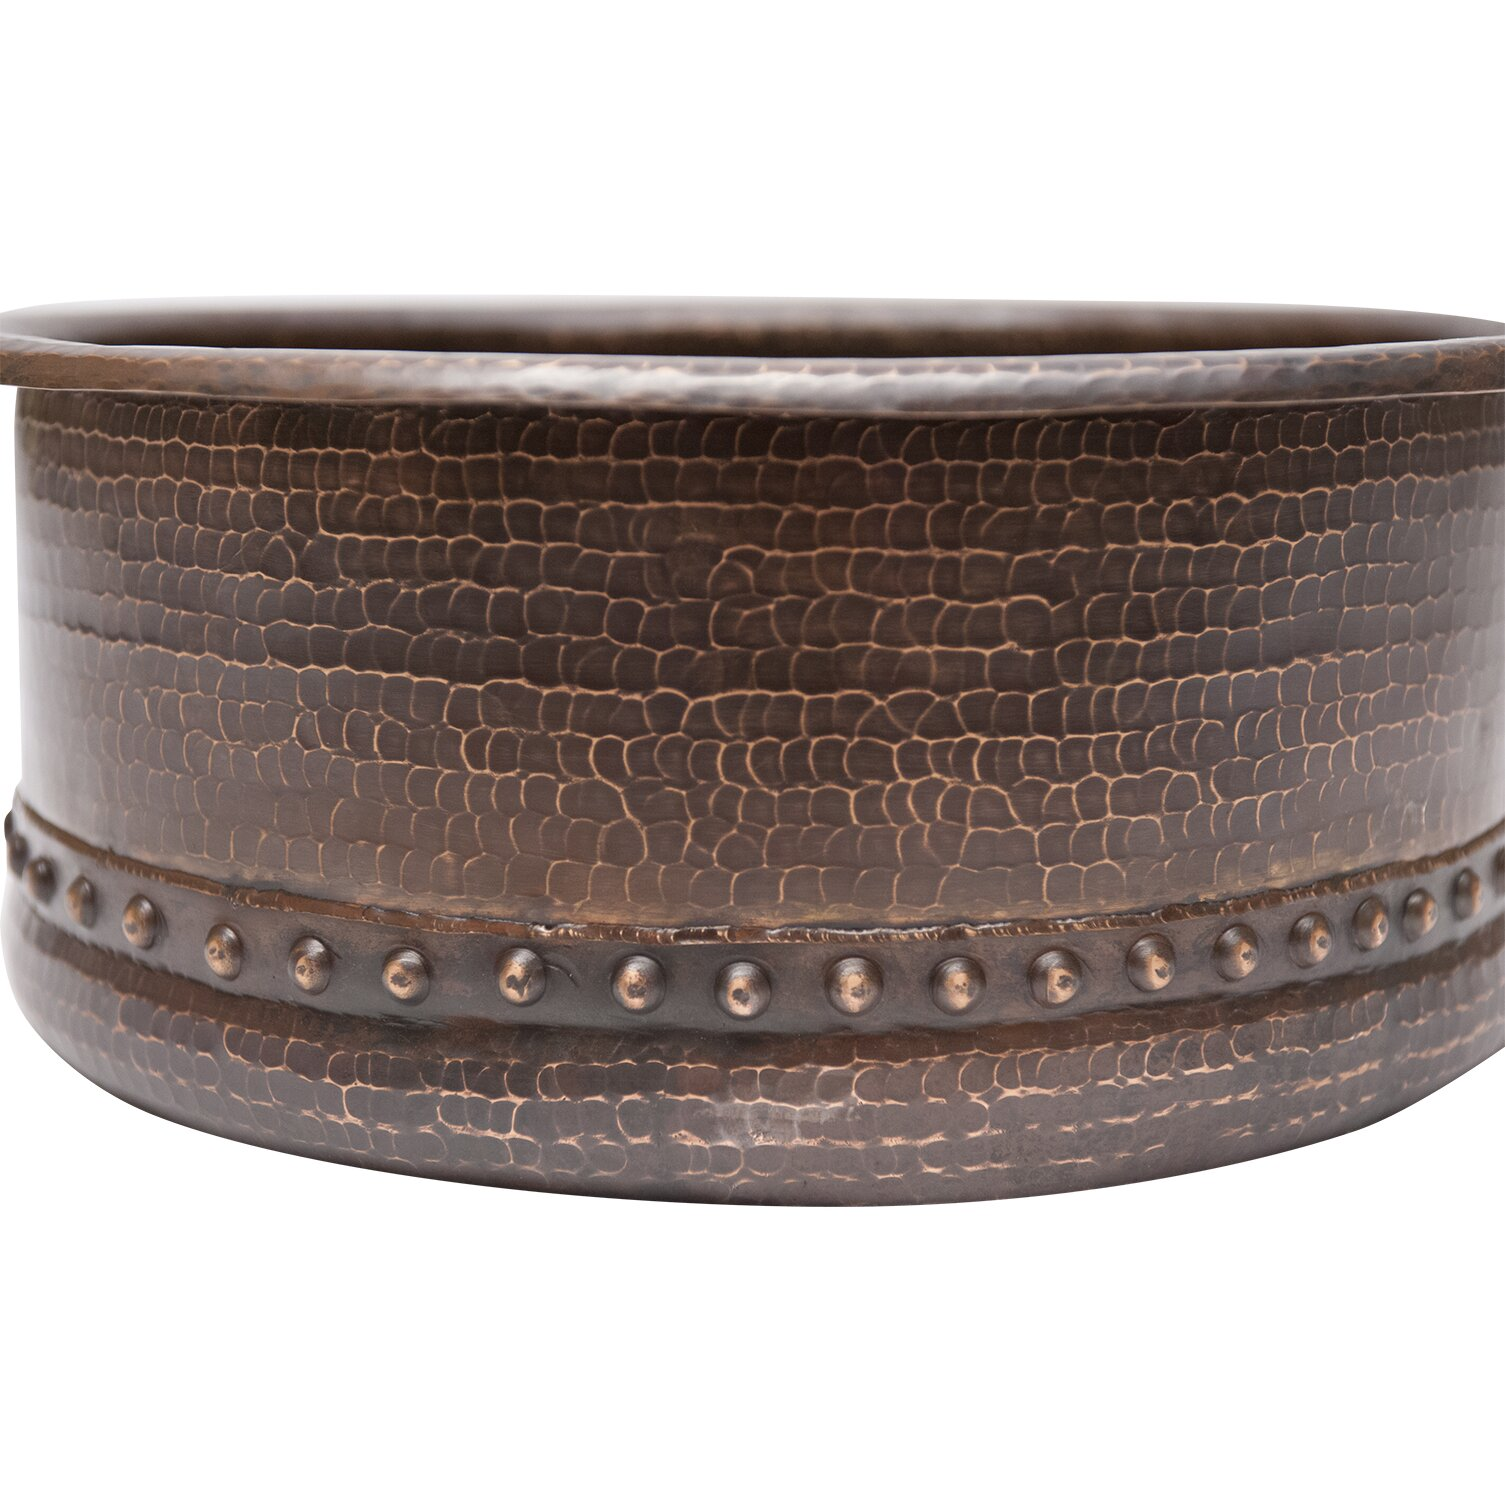 Round Tub Hammered Copper Vessel Sink by Premier Copper Products